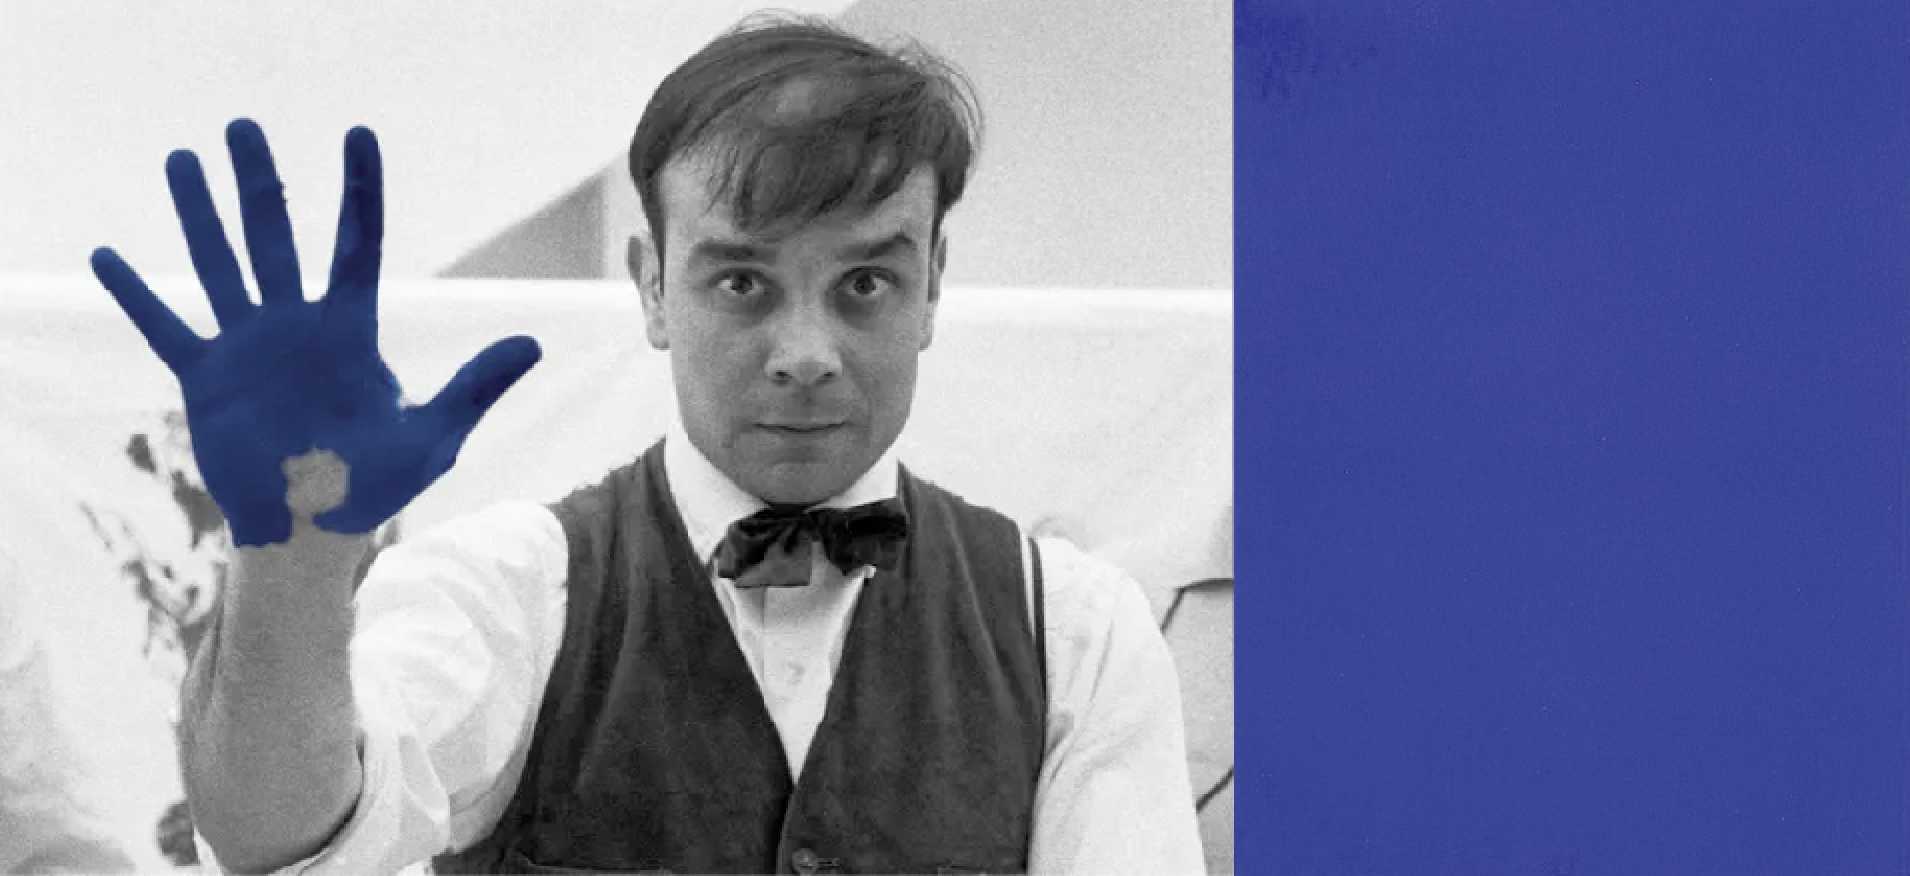 Yves Klein and his famous blue.